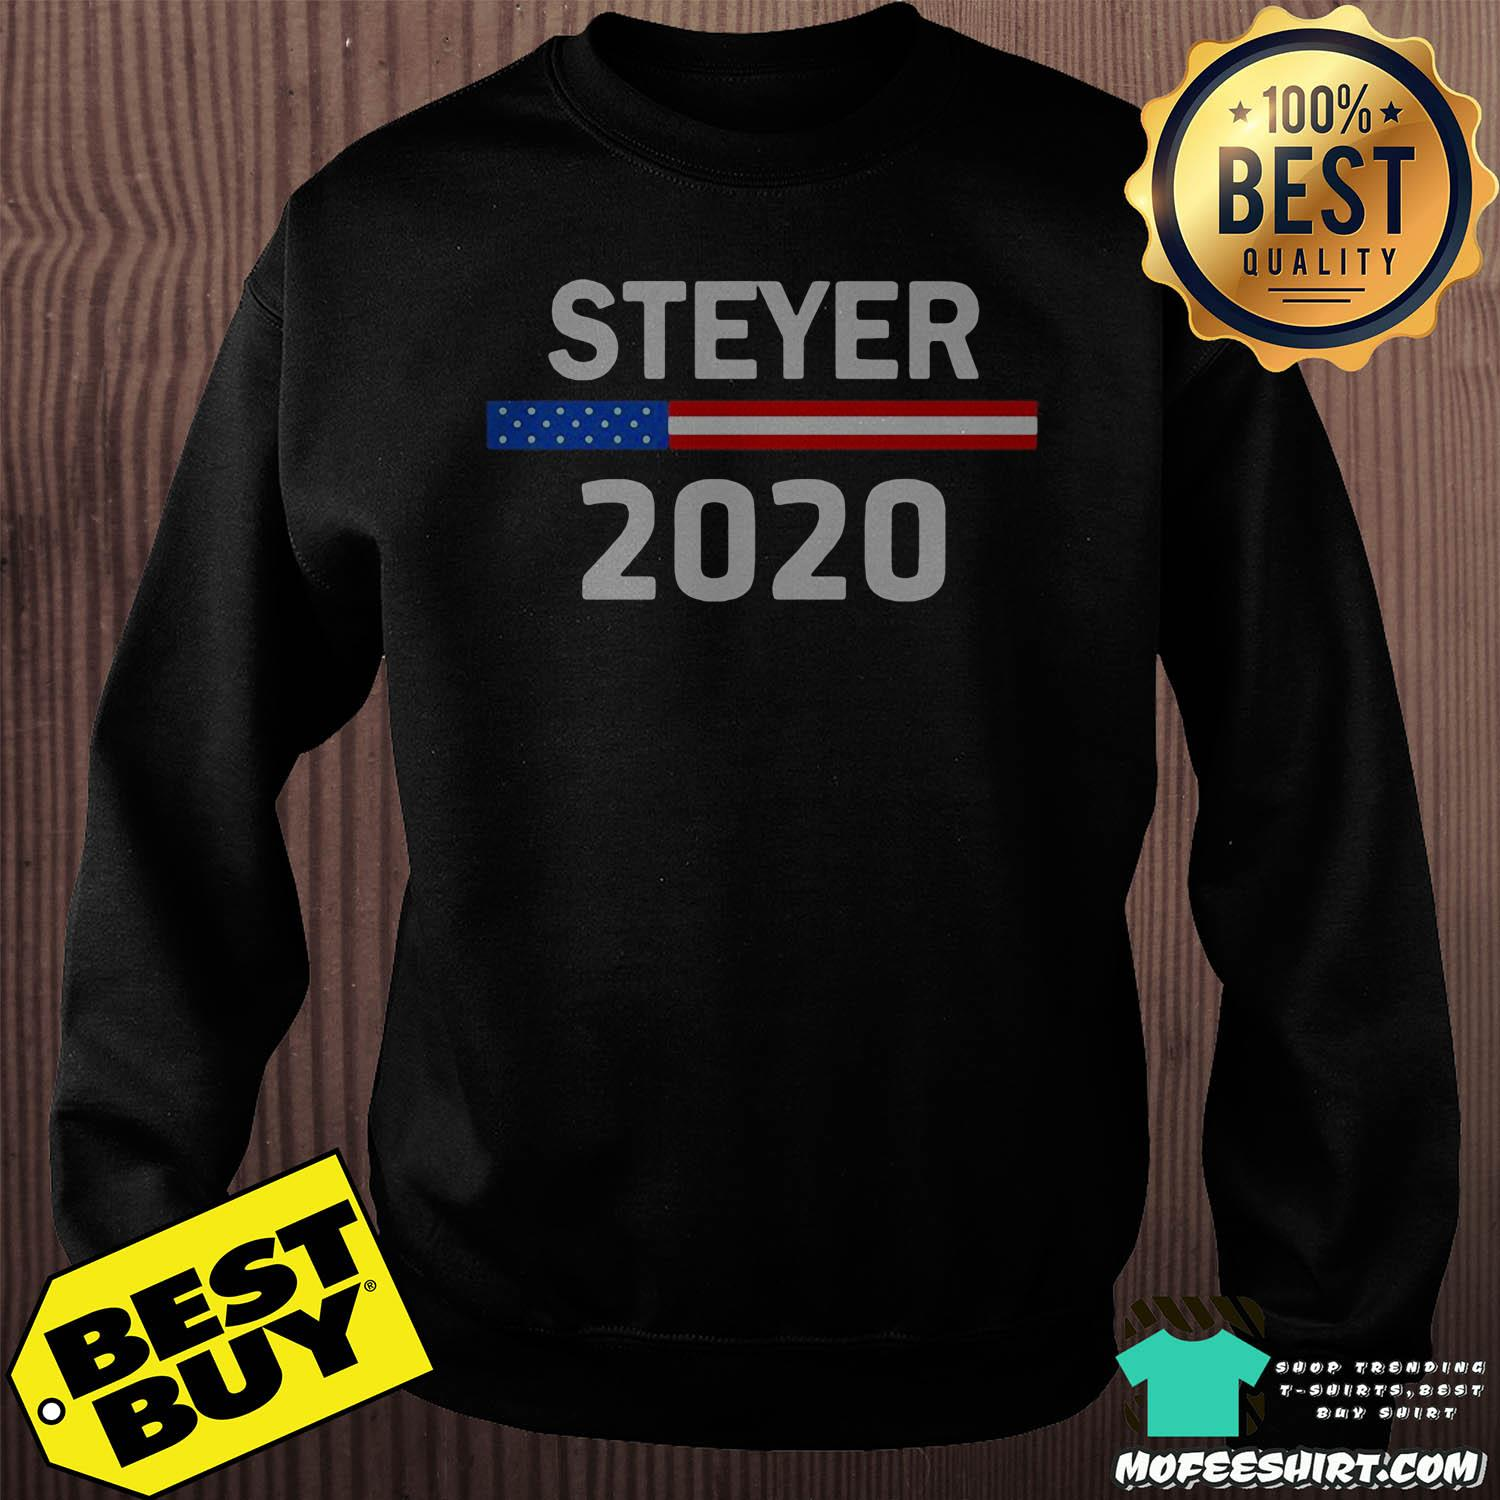 tom steyer for president 2020 sweater - Tom Steyer For President 2020 shirt